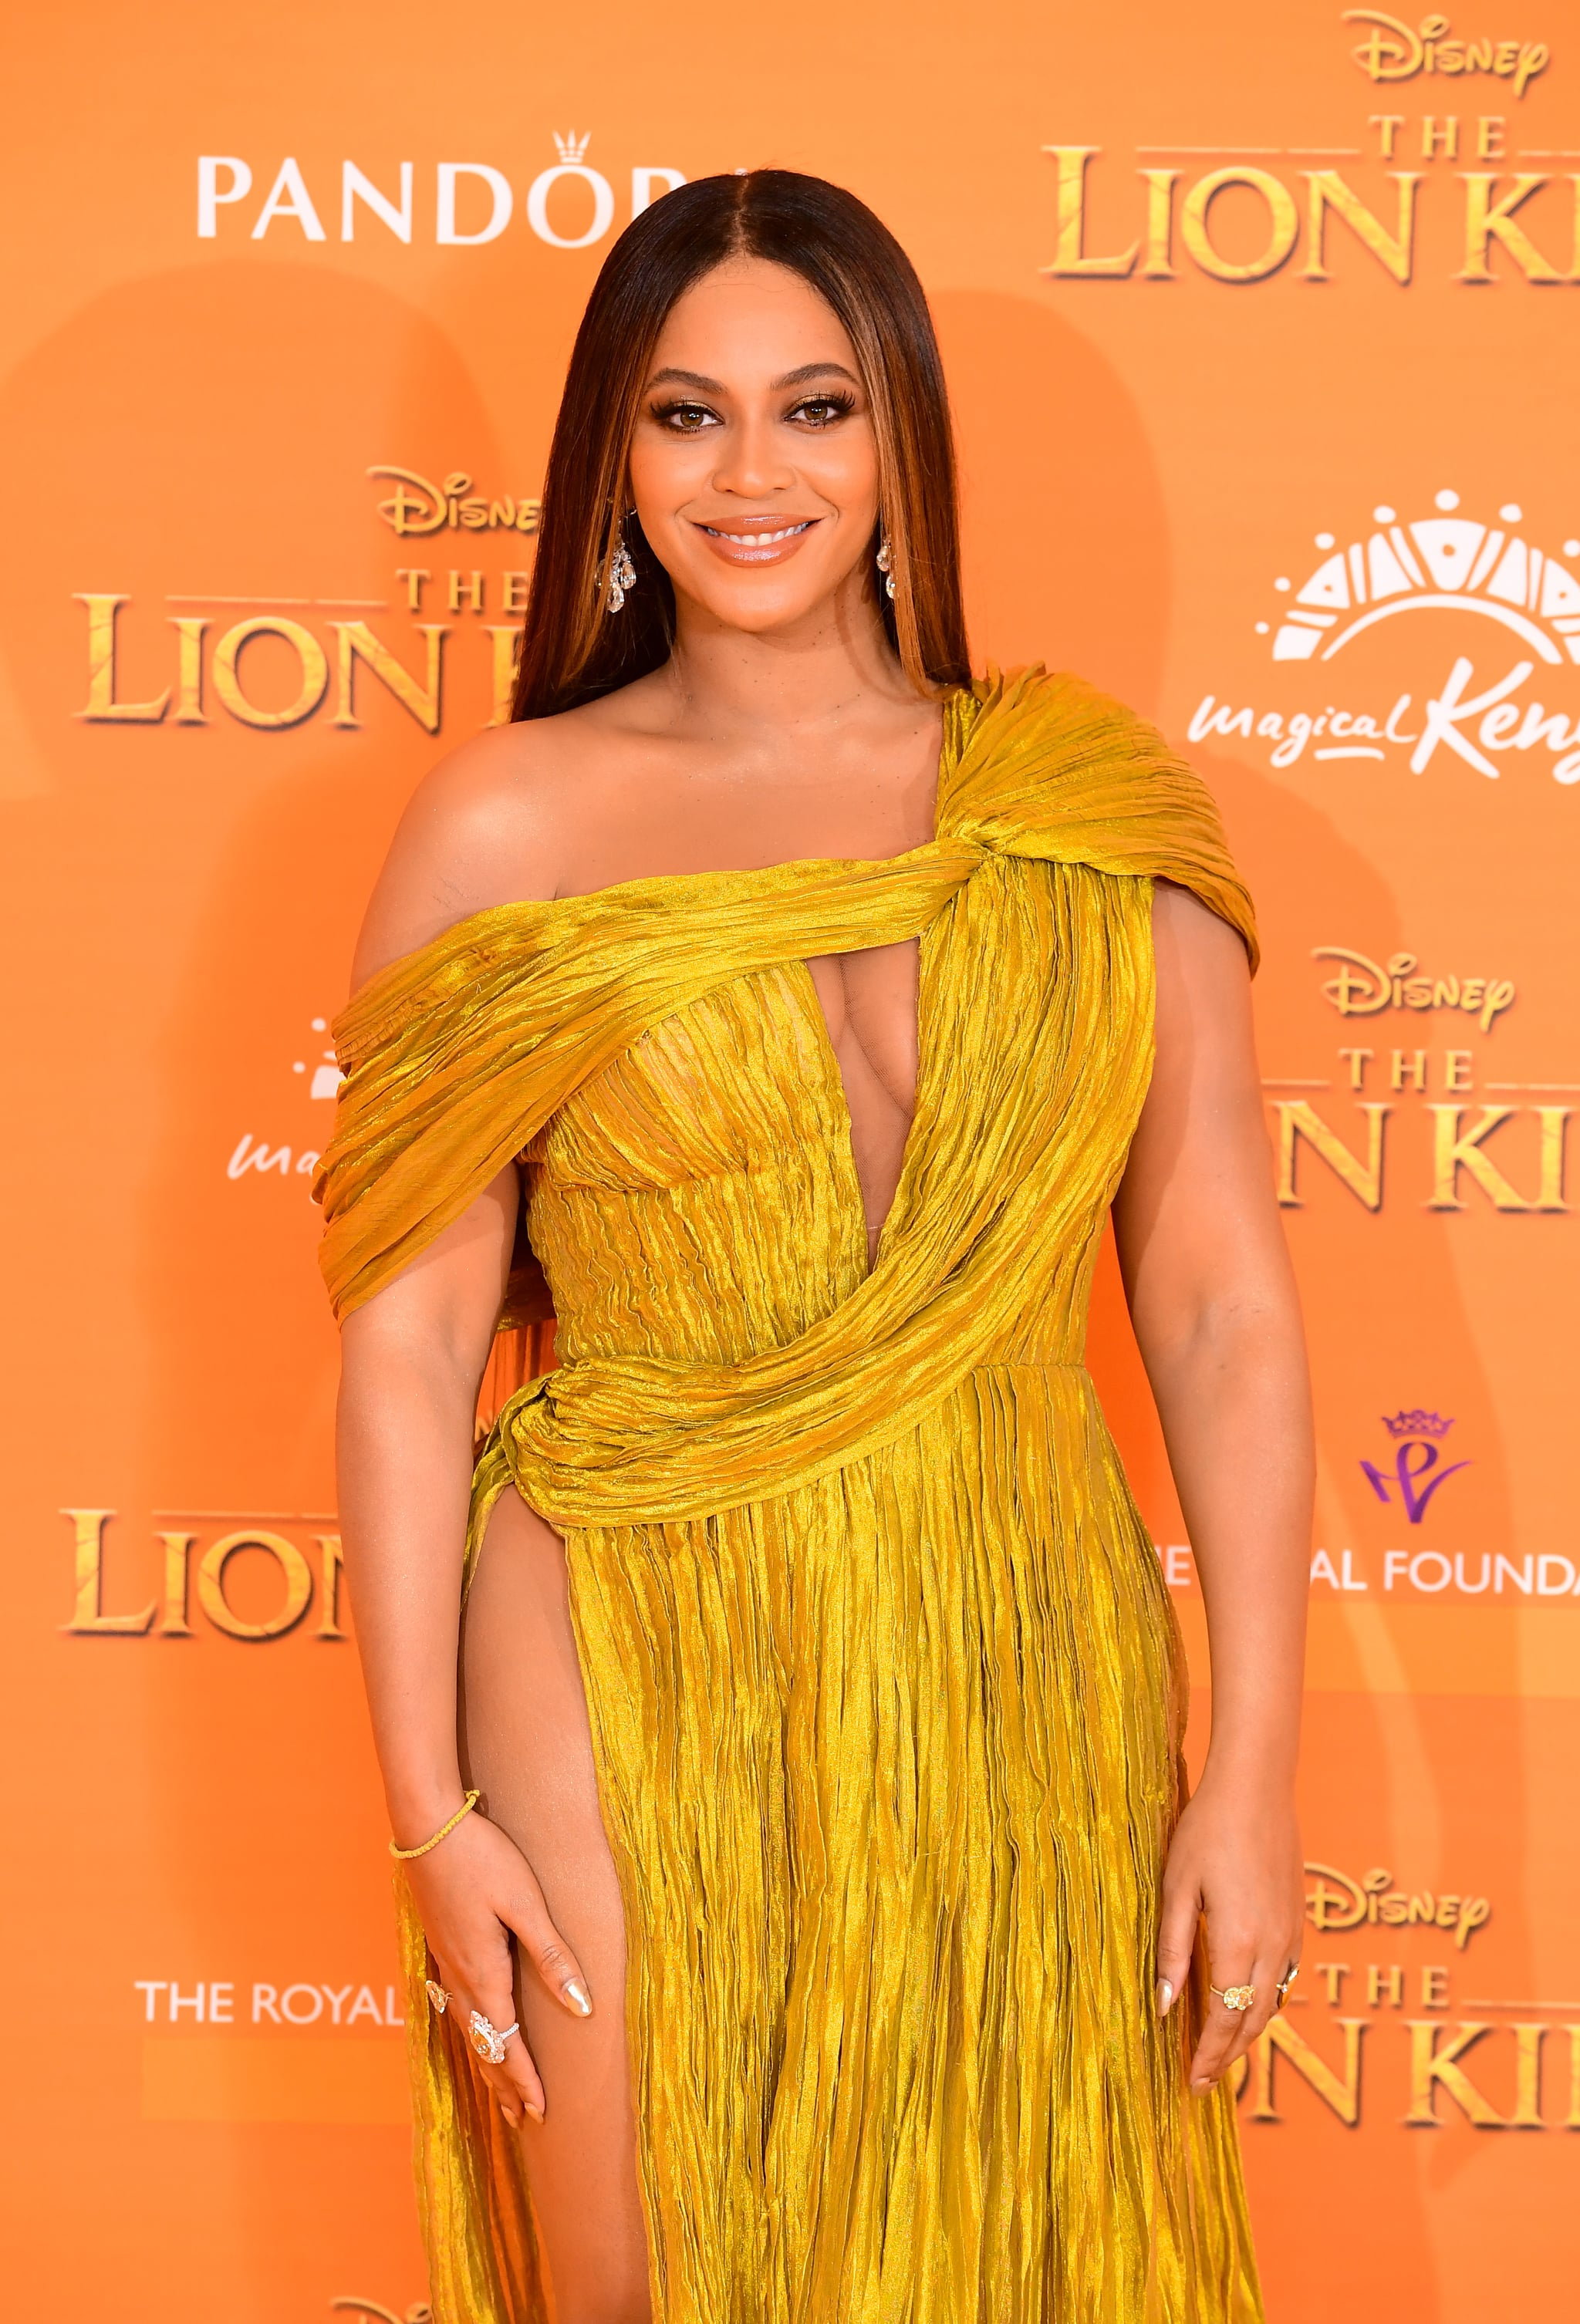 Beyonce attending Disney's The Lion King European Premiere held in Leicester Square, London. (Photo by Ian West/PA Images via Getty Images)